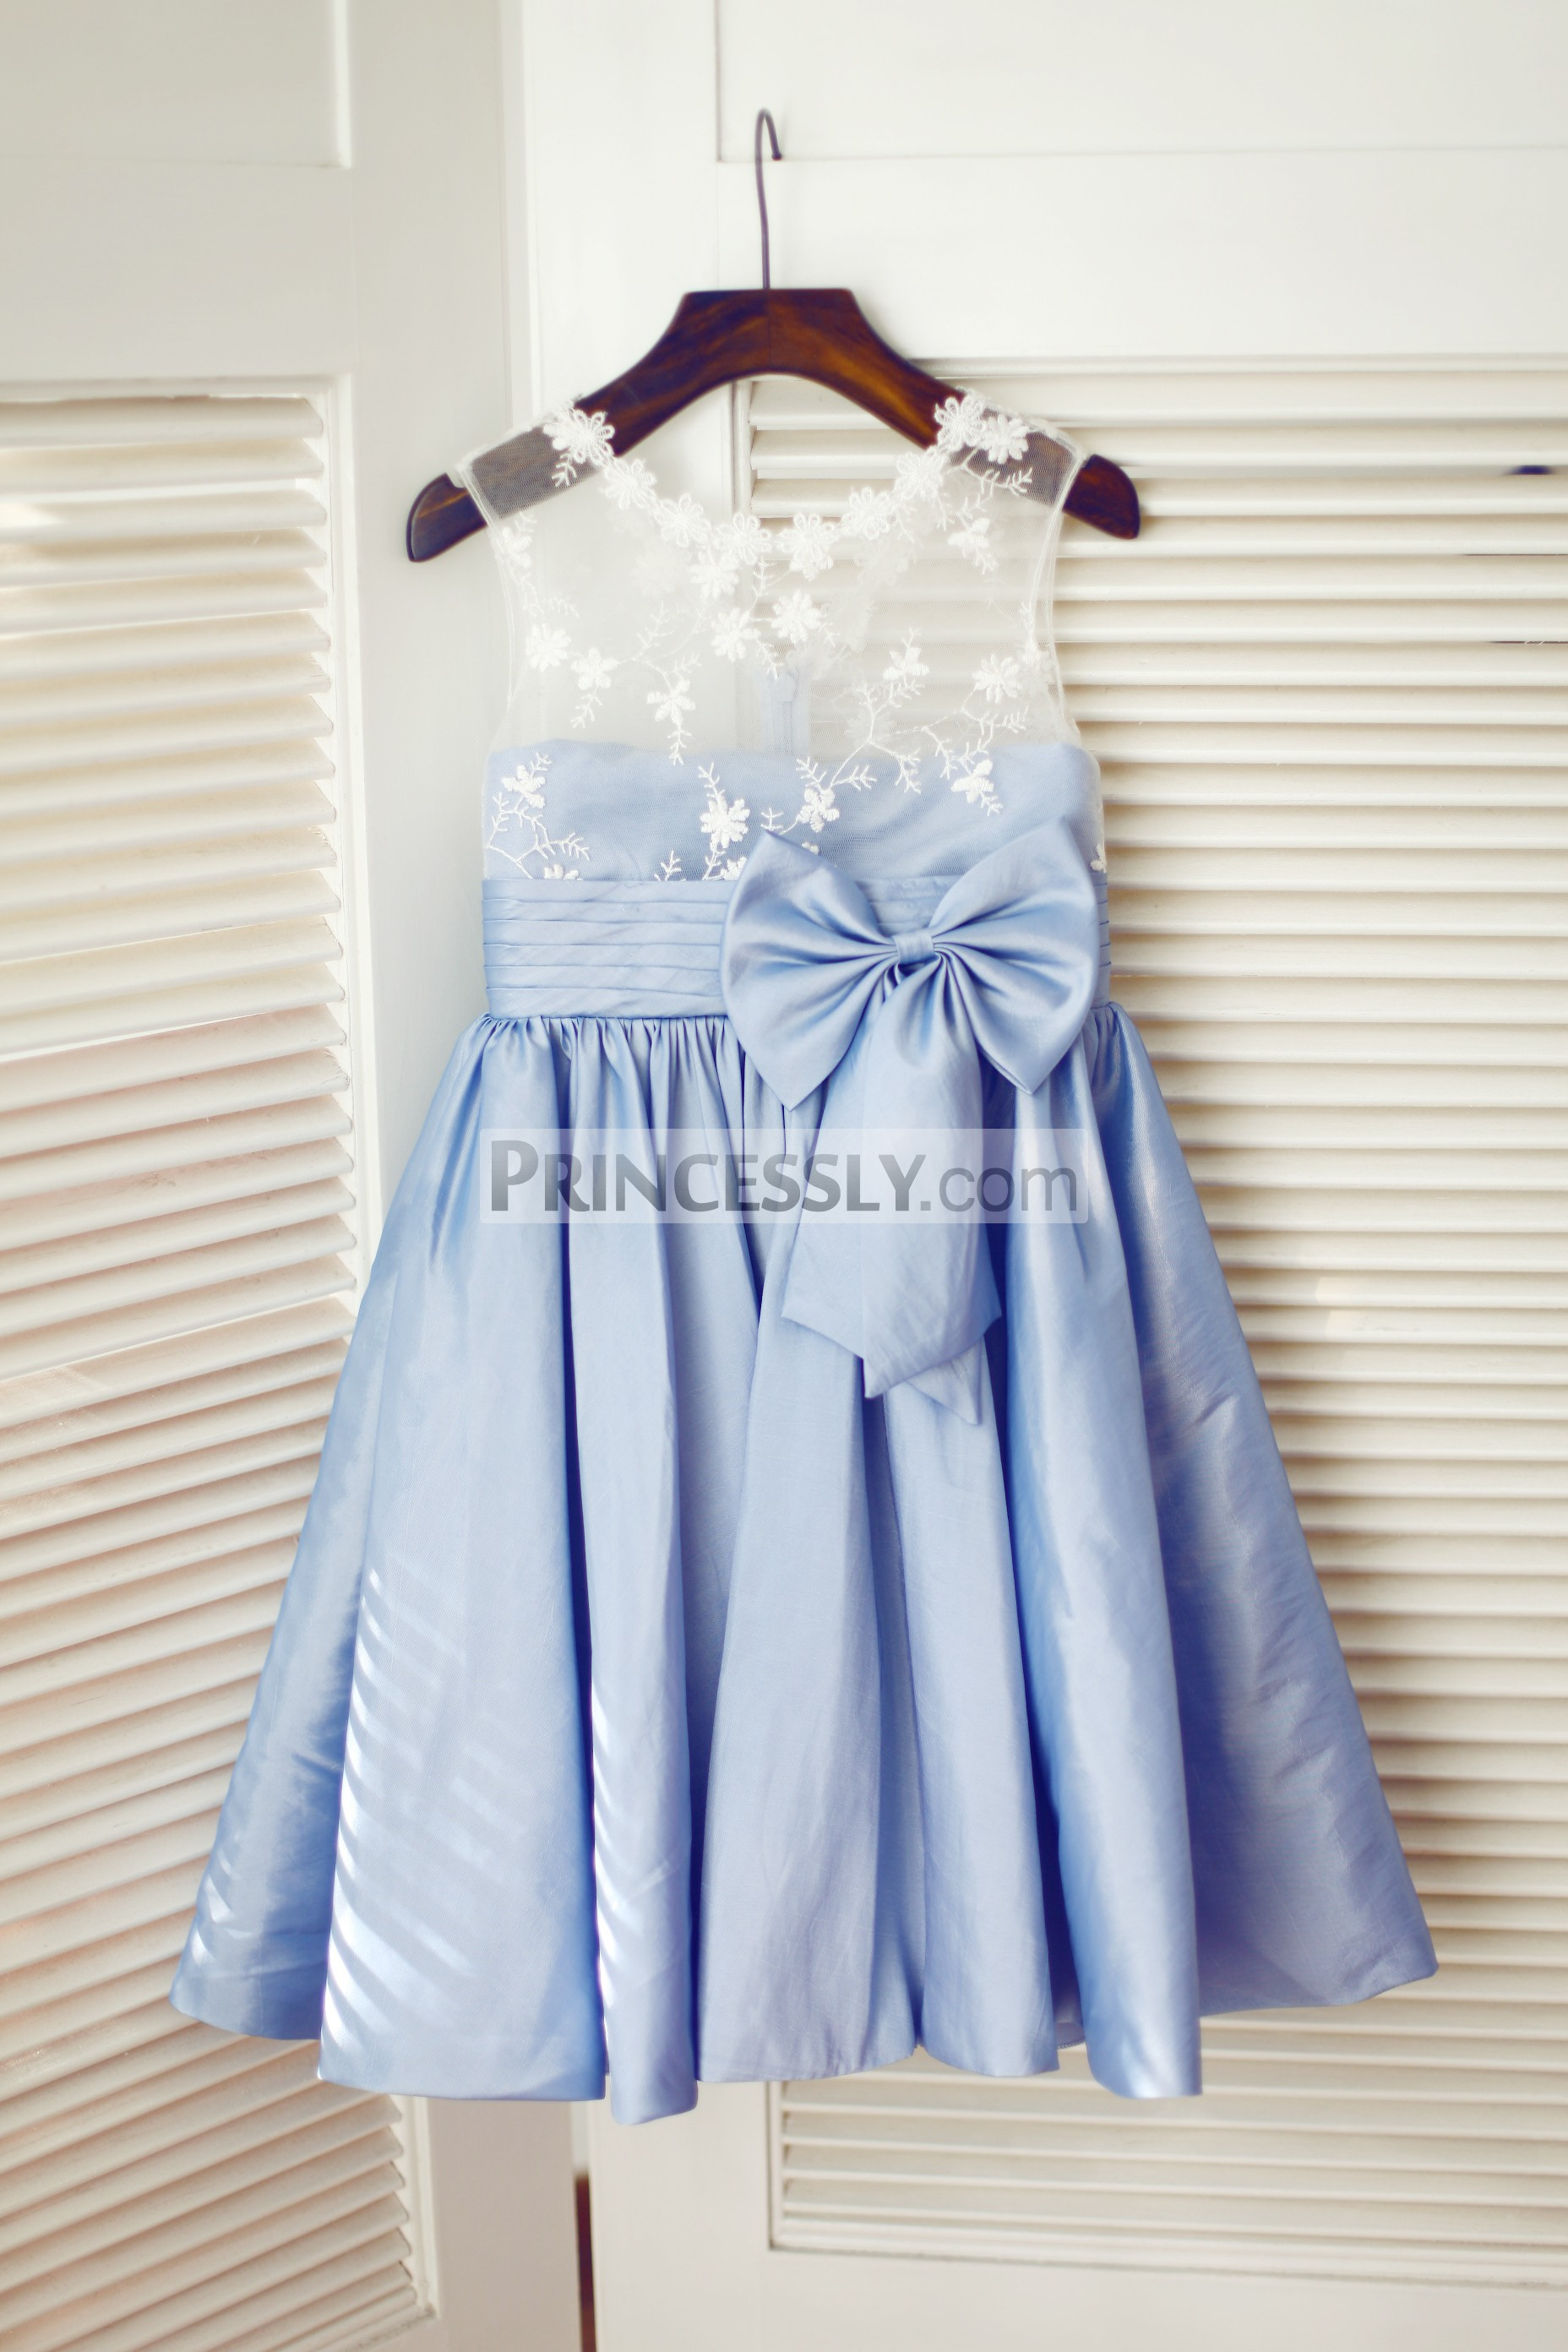 a273f7070 Sheer Ivory Lace Blue Taffeta Wedding Flower Girl Dress with Bow ...